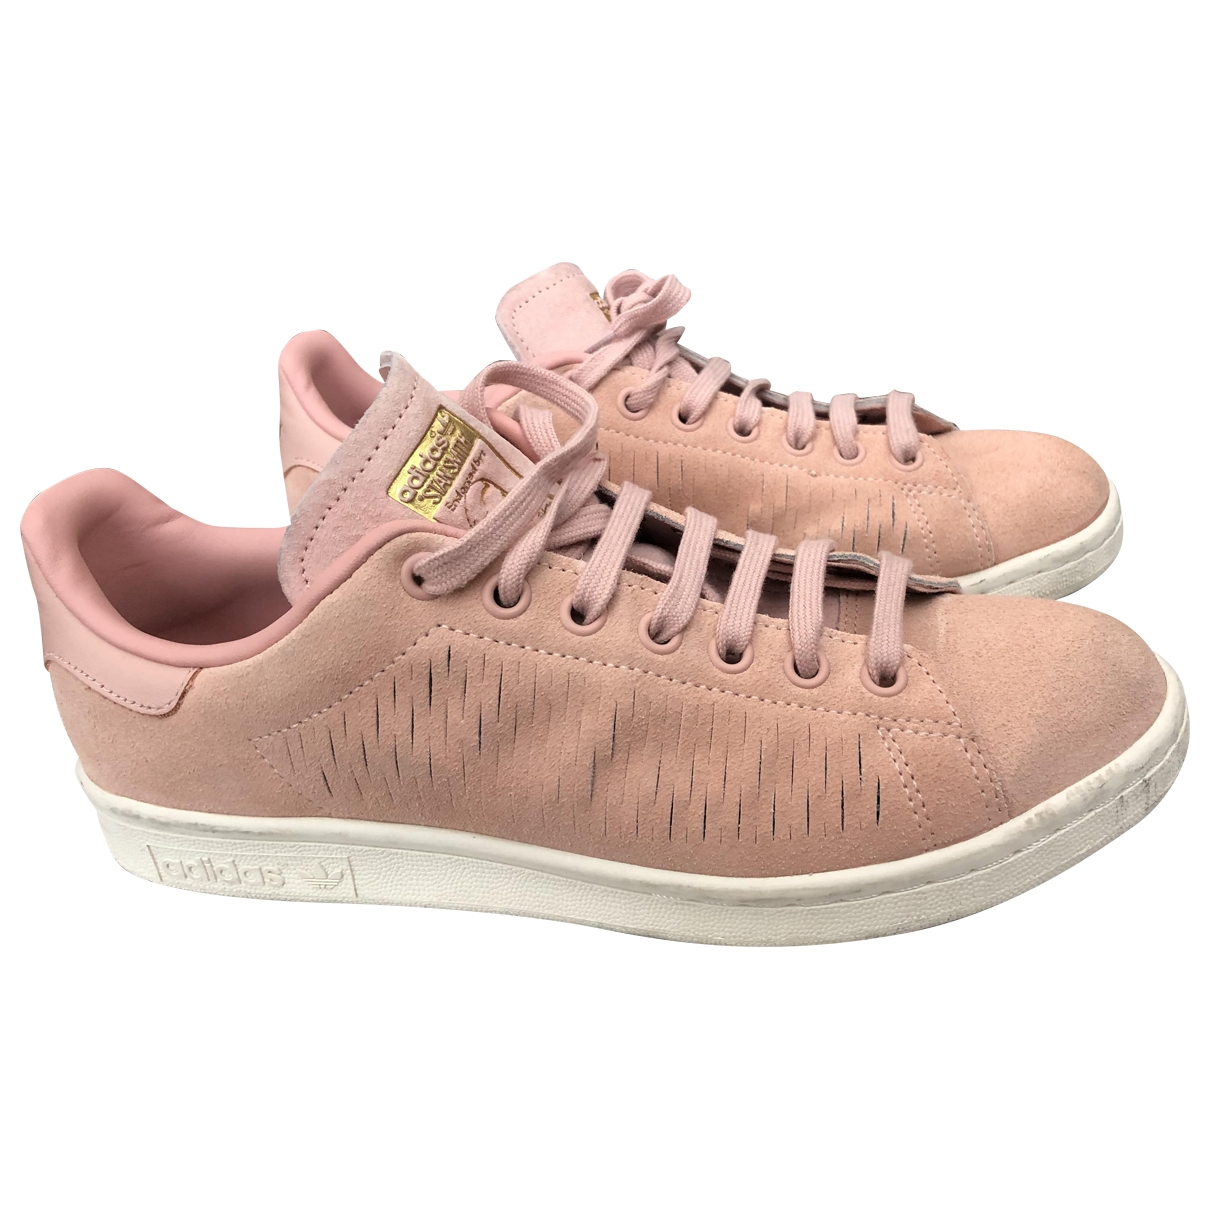 Adidas - Baskets Stan Smith pour femme en suede - rose